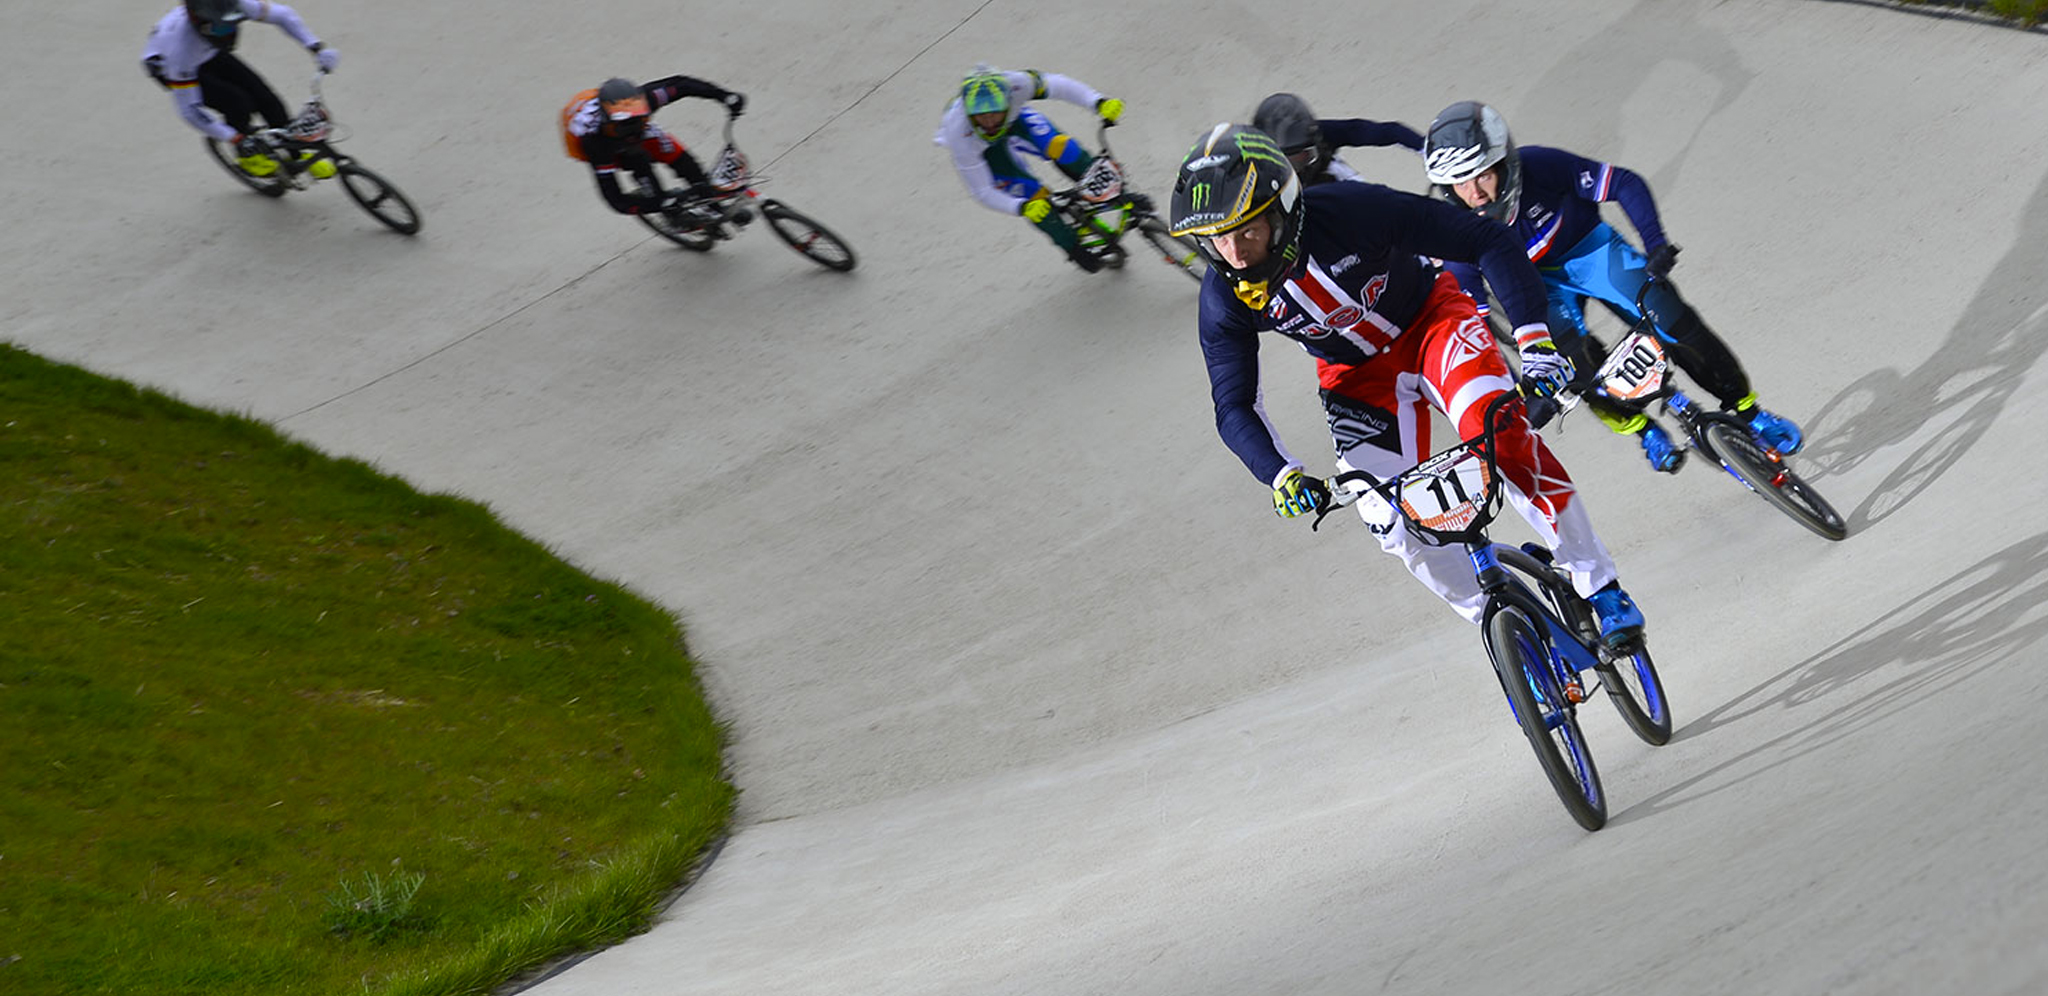 Joris Daudet wins the UCI BMX Supercross in Papendal, Holland with Connor Fields in 3rd.